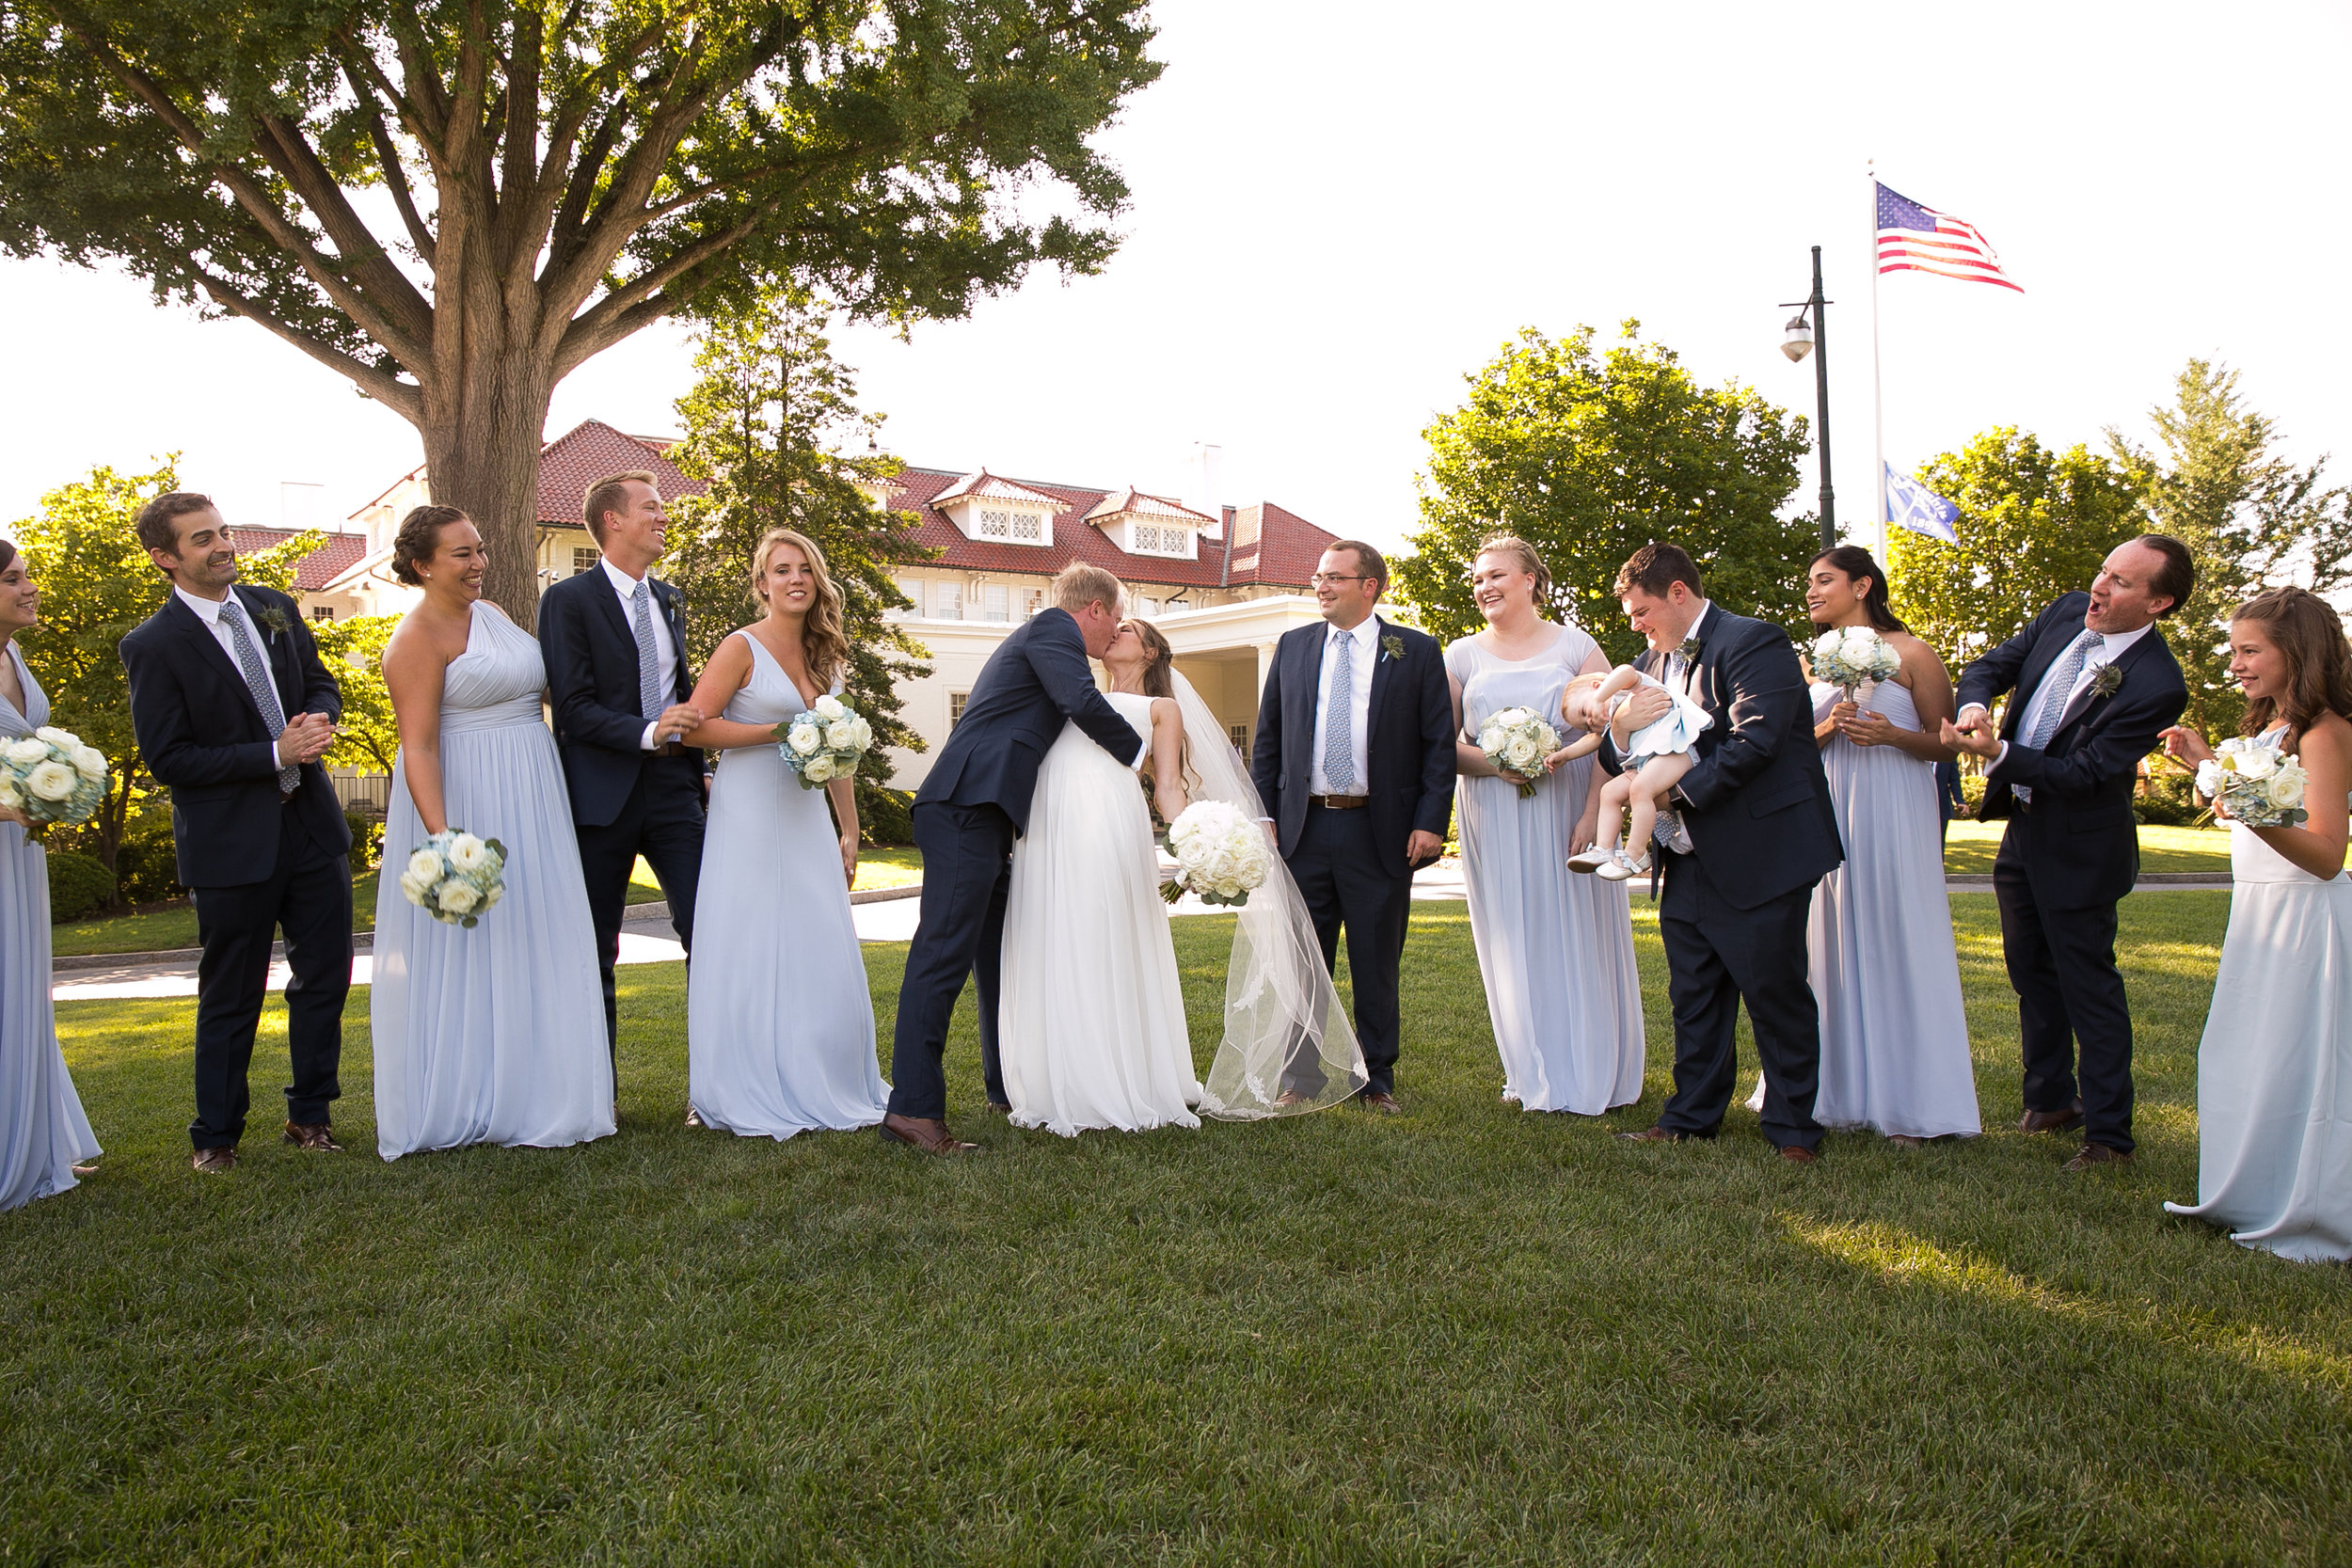 Atelier Ashley Flowers + Dusty Blue + Borrowed and Blue Photography + Congressional Country Club + DC wedding +  kiss